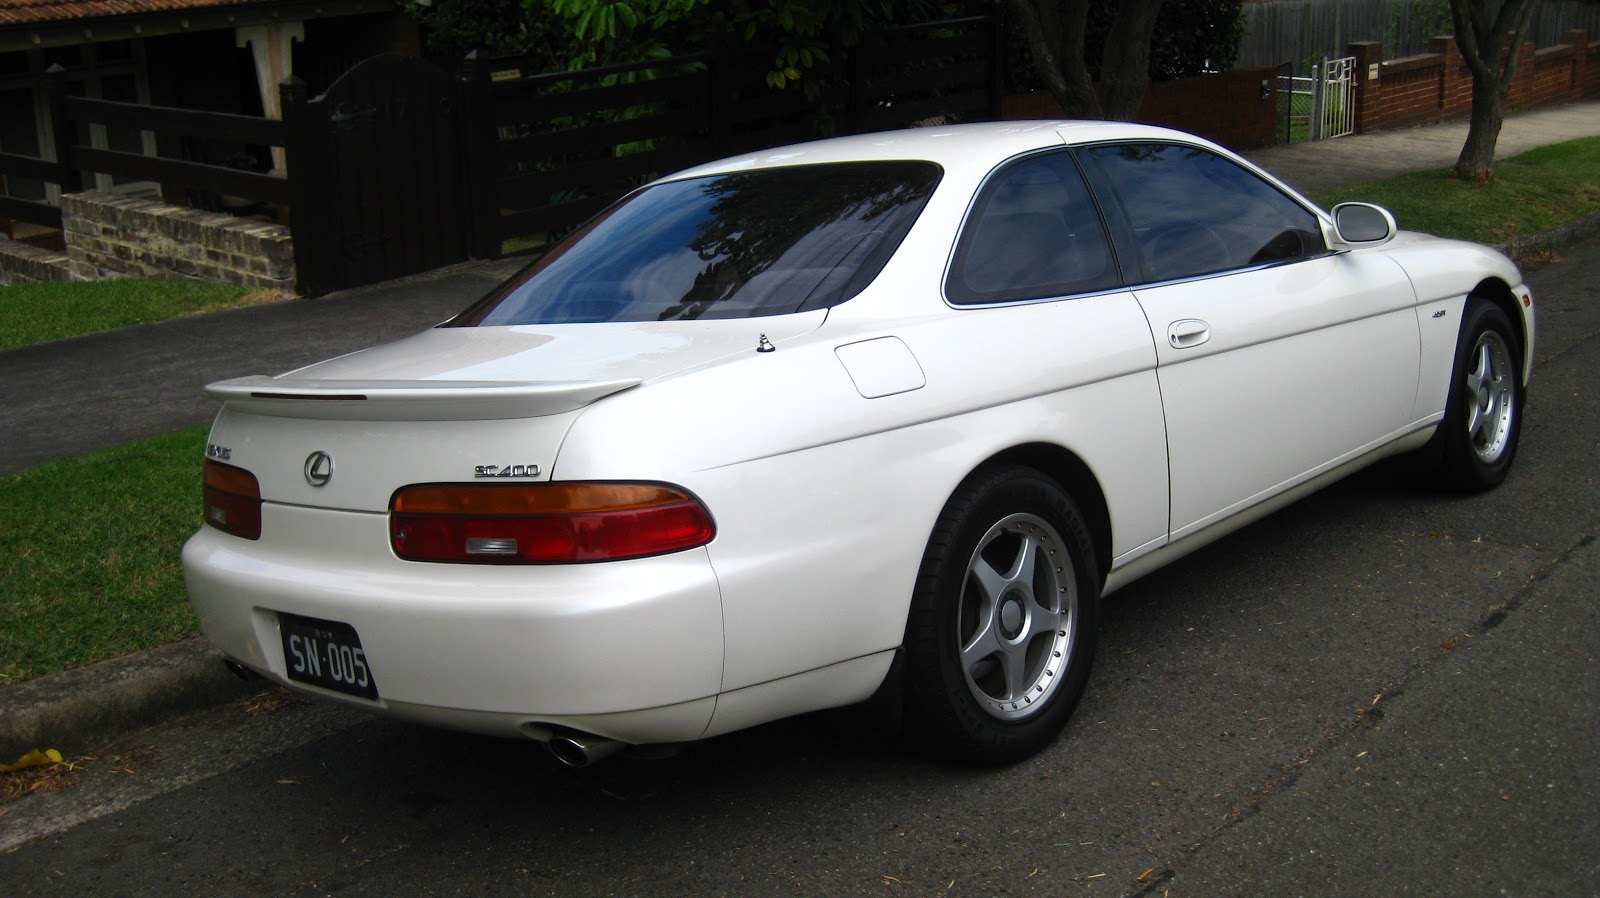 aussie old parked cars 1994 lexus sc 400. Black Bedroom Furniture Sets. Home Design Ideas